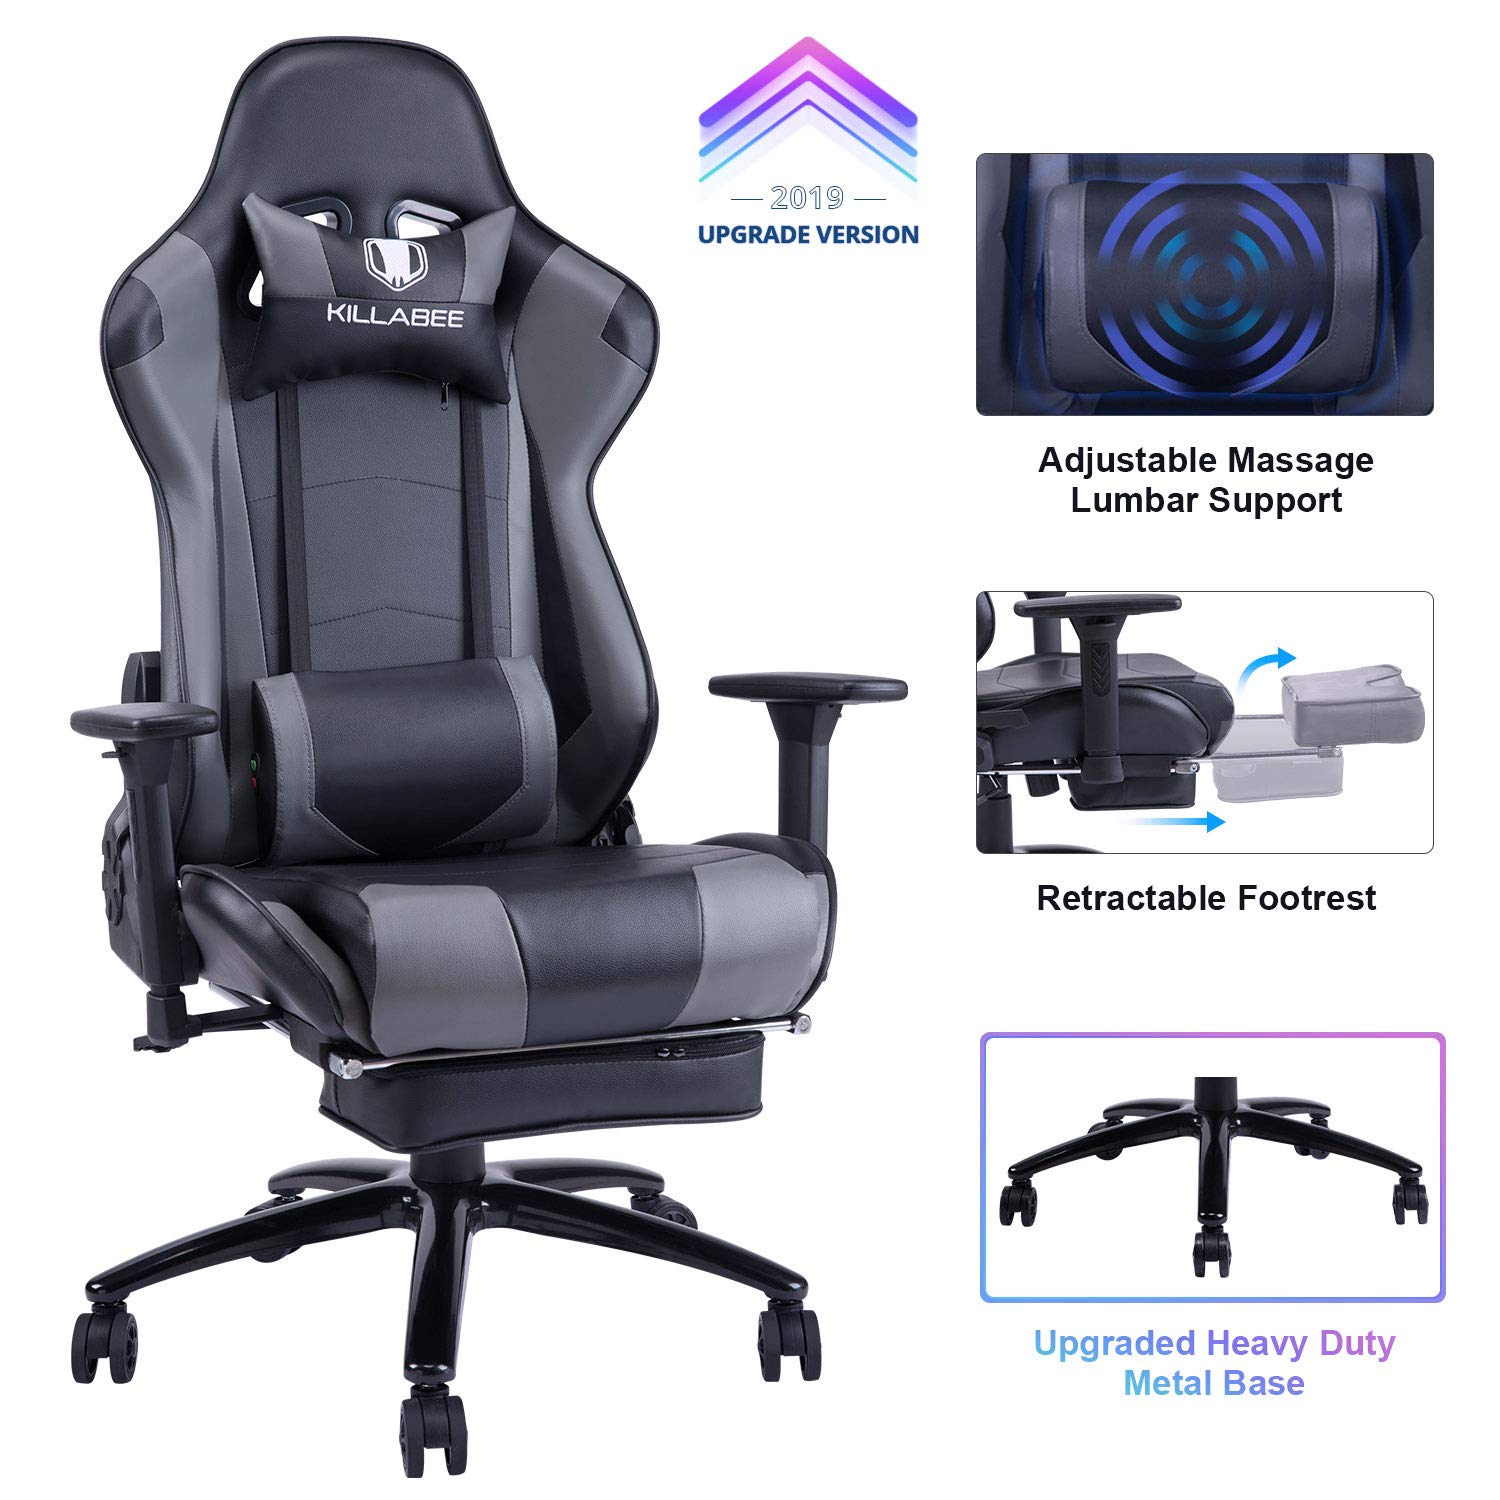 KILLABEE Big and Tall 350lb Massage Gaming Chair Metal Base - Adjustable Massage Lumbar Cushion, Retractable Footrest High Back Ergonomic Leather Racing Computer Desk Executive Office Chair by KILLABEE